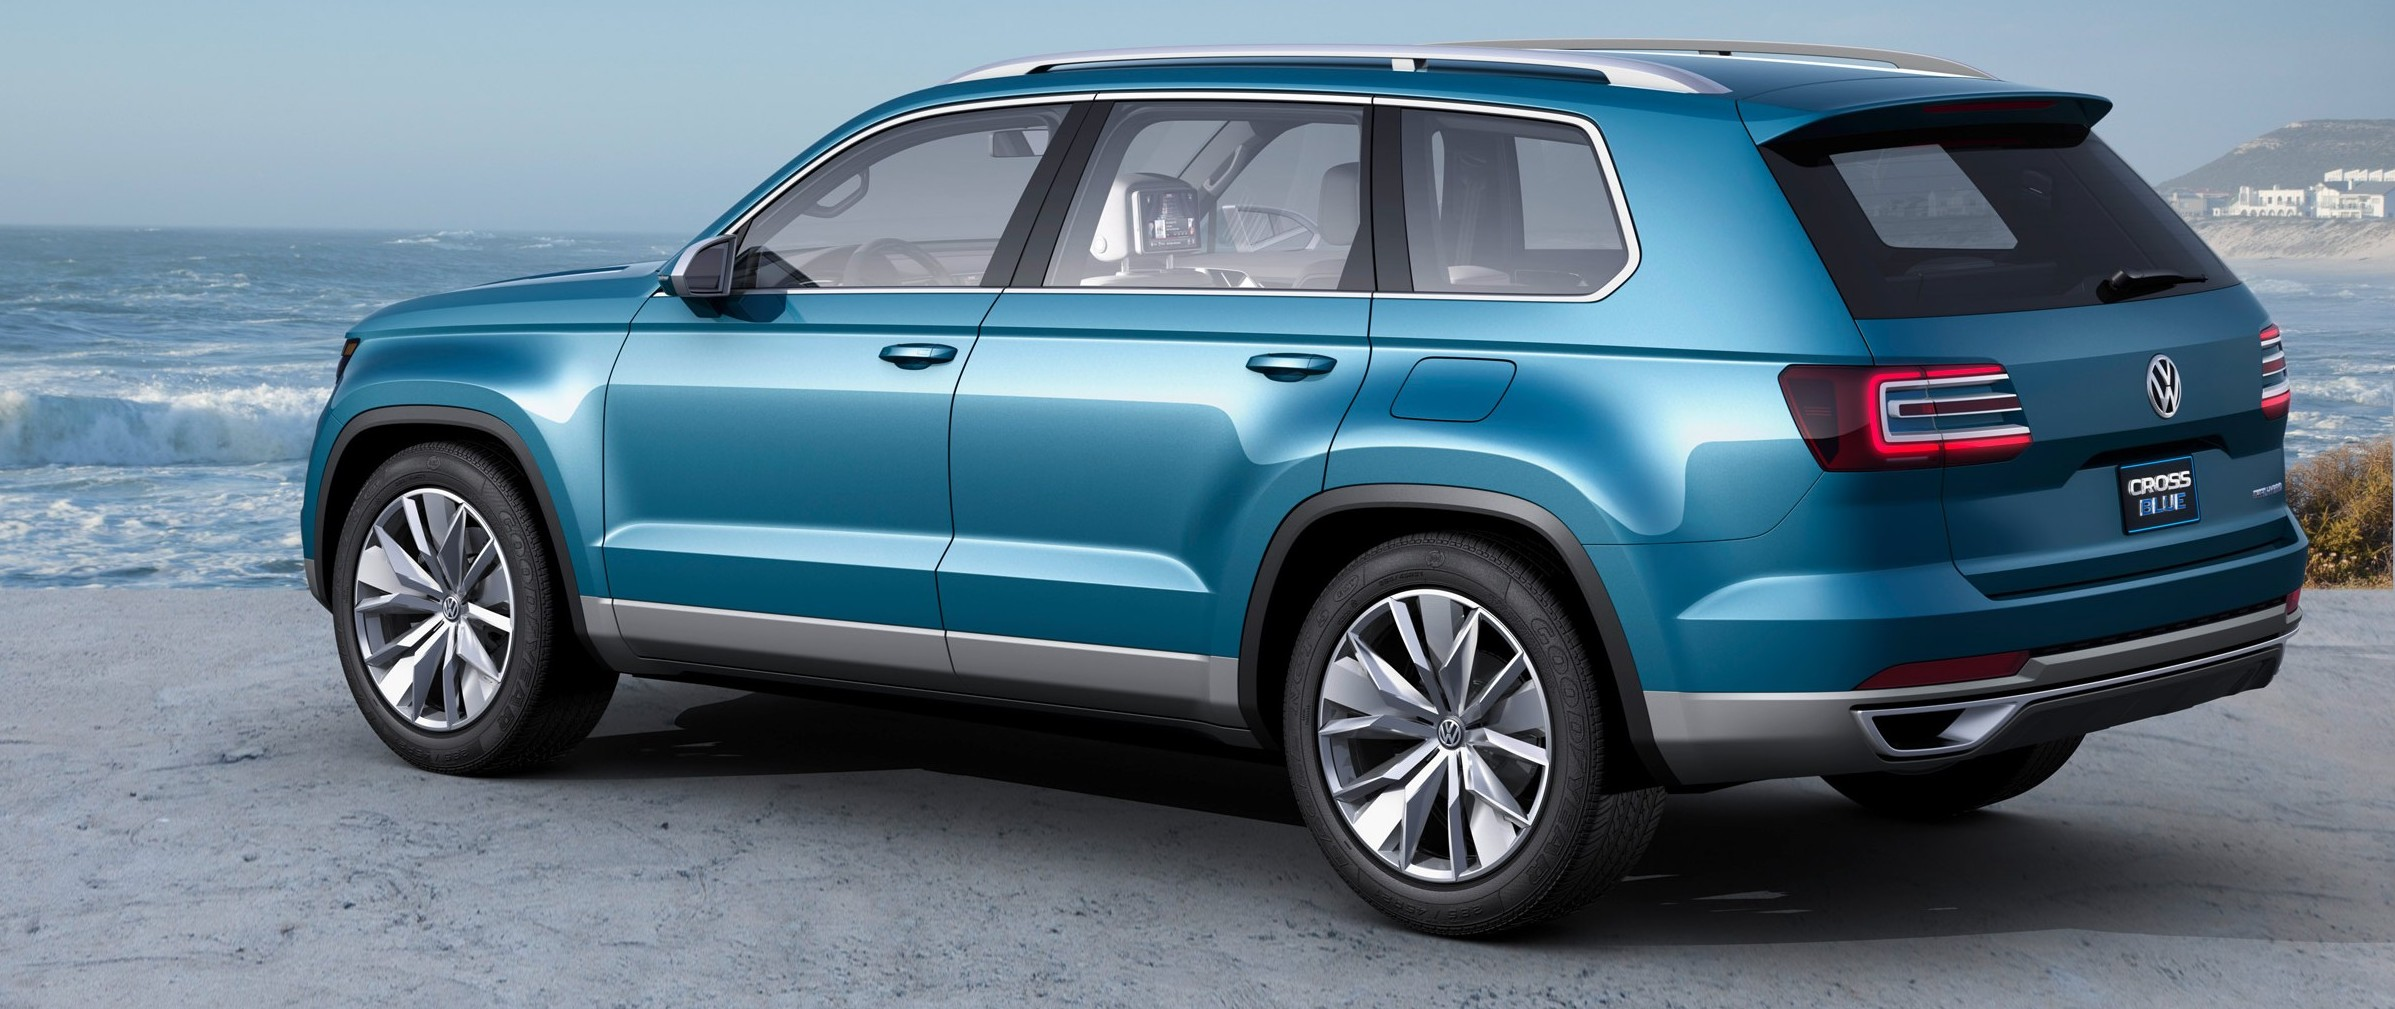 volkswagen cross blue concept 6 vwvortex